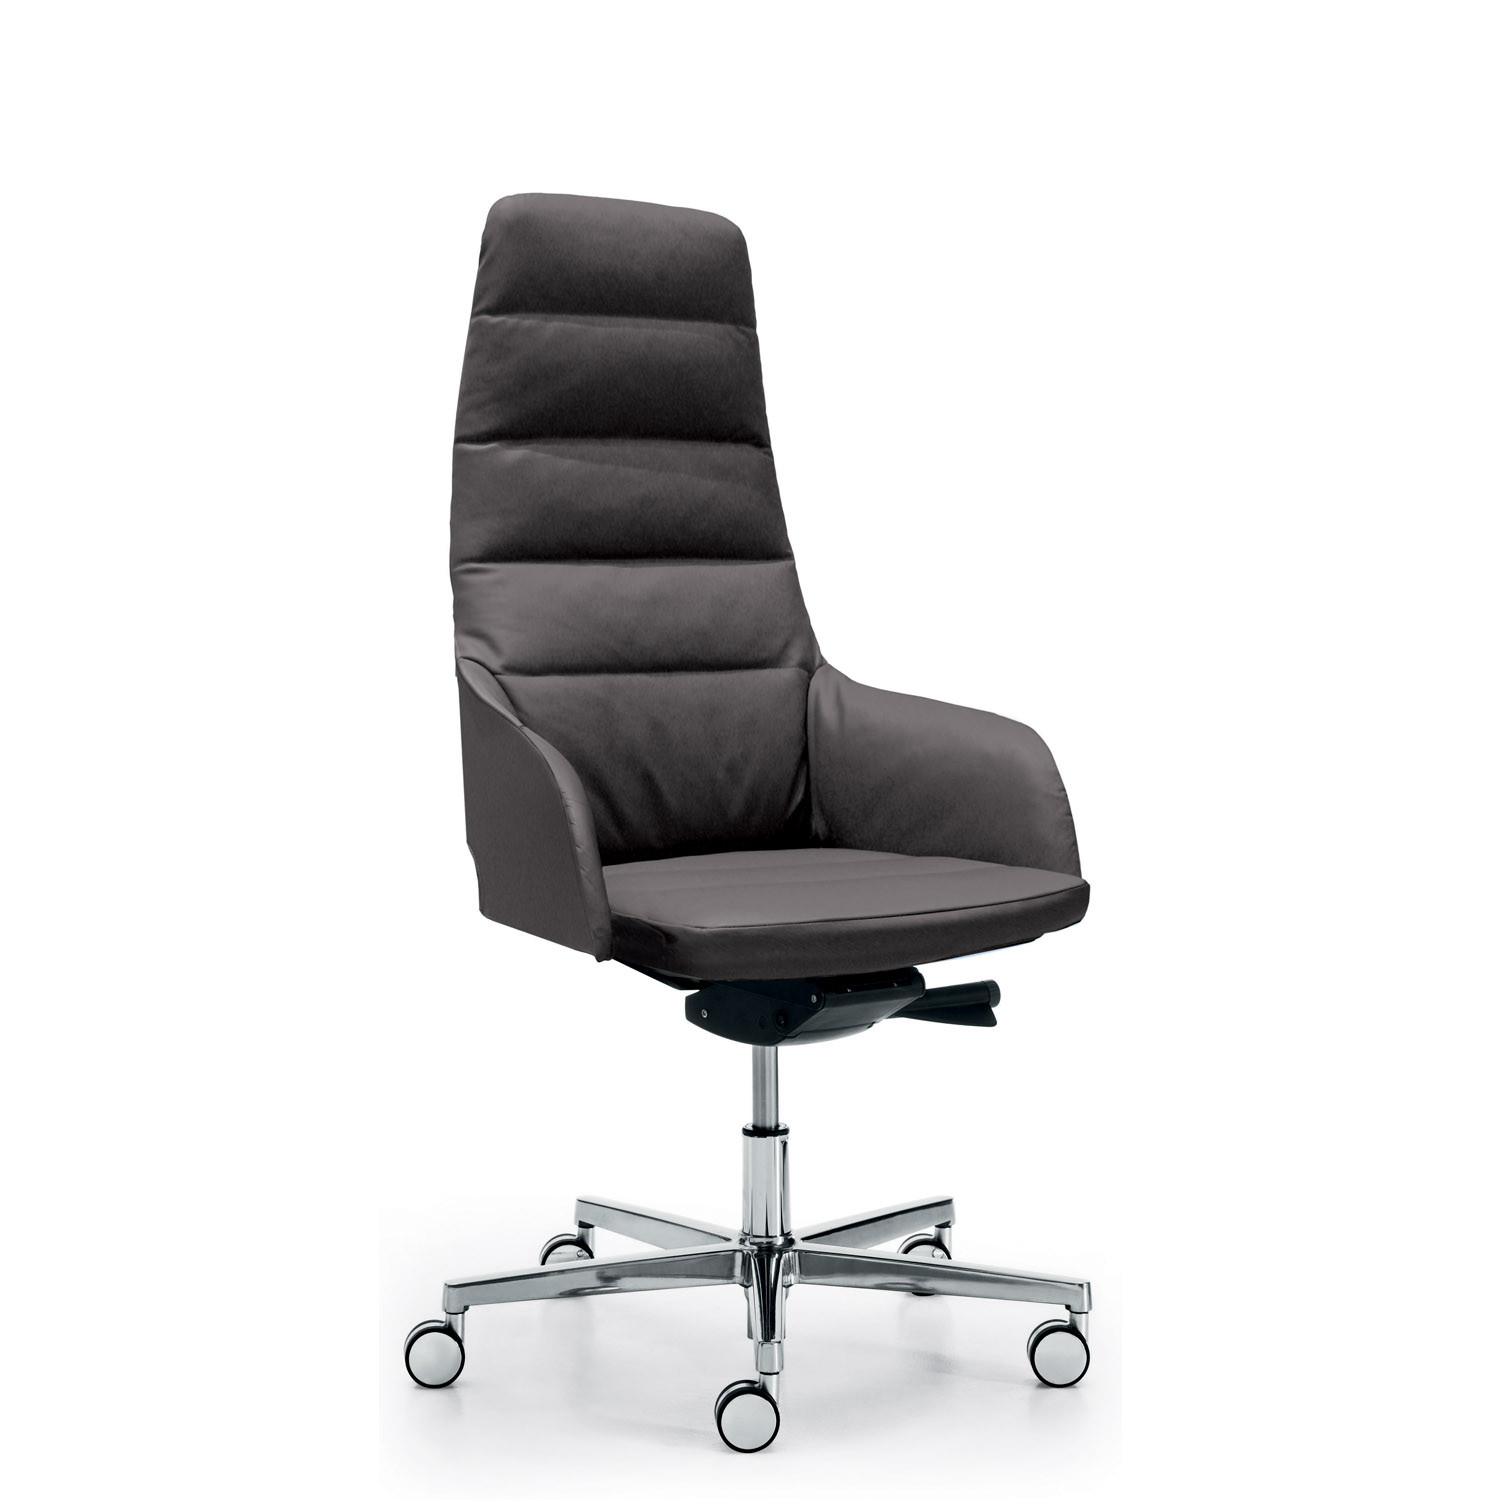 Captain Soft High Back Executive Chair